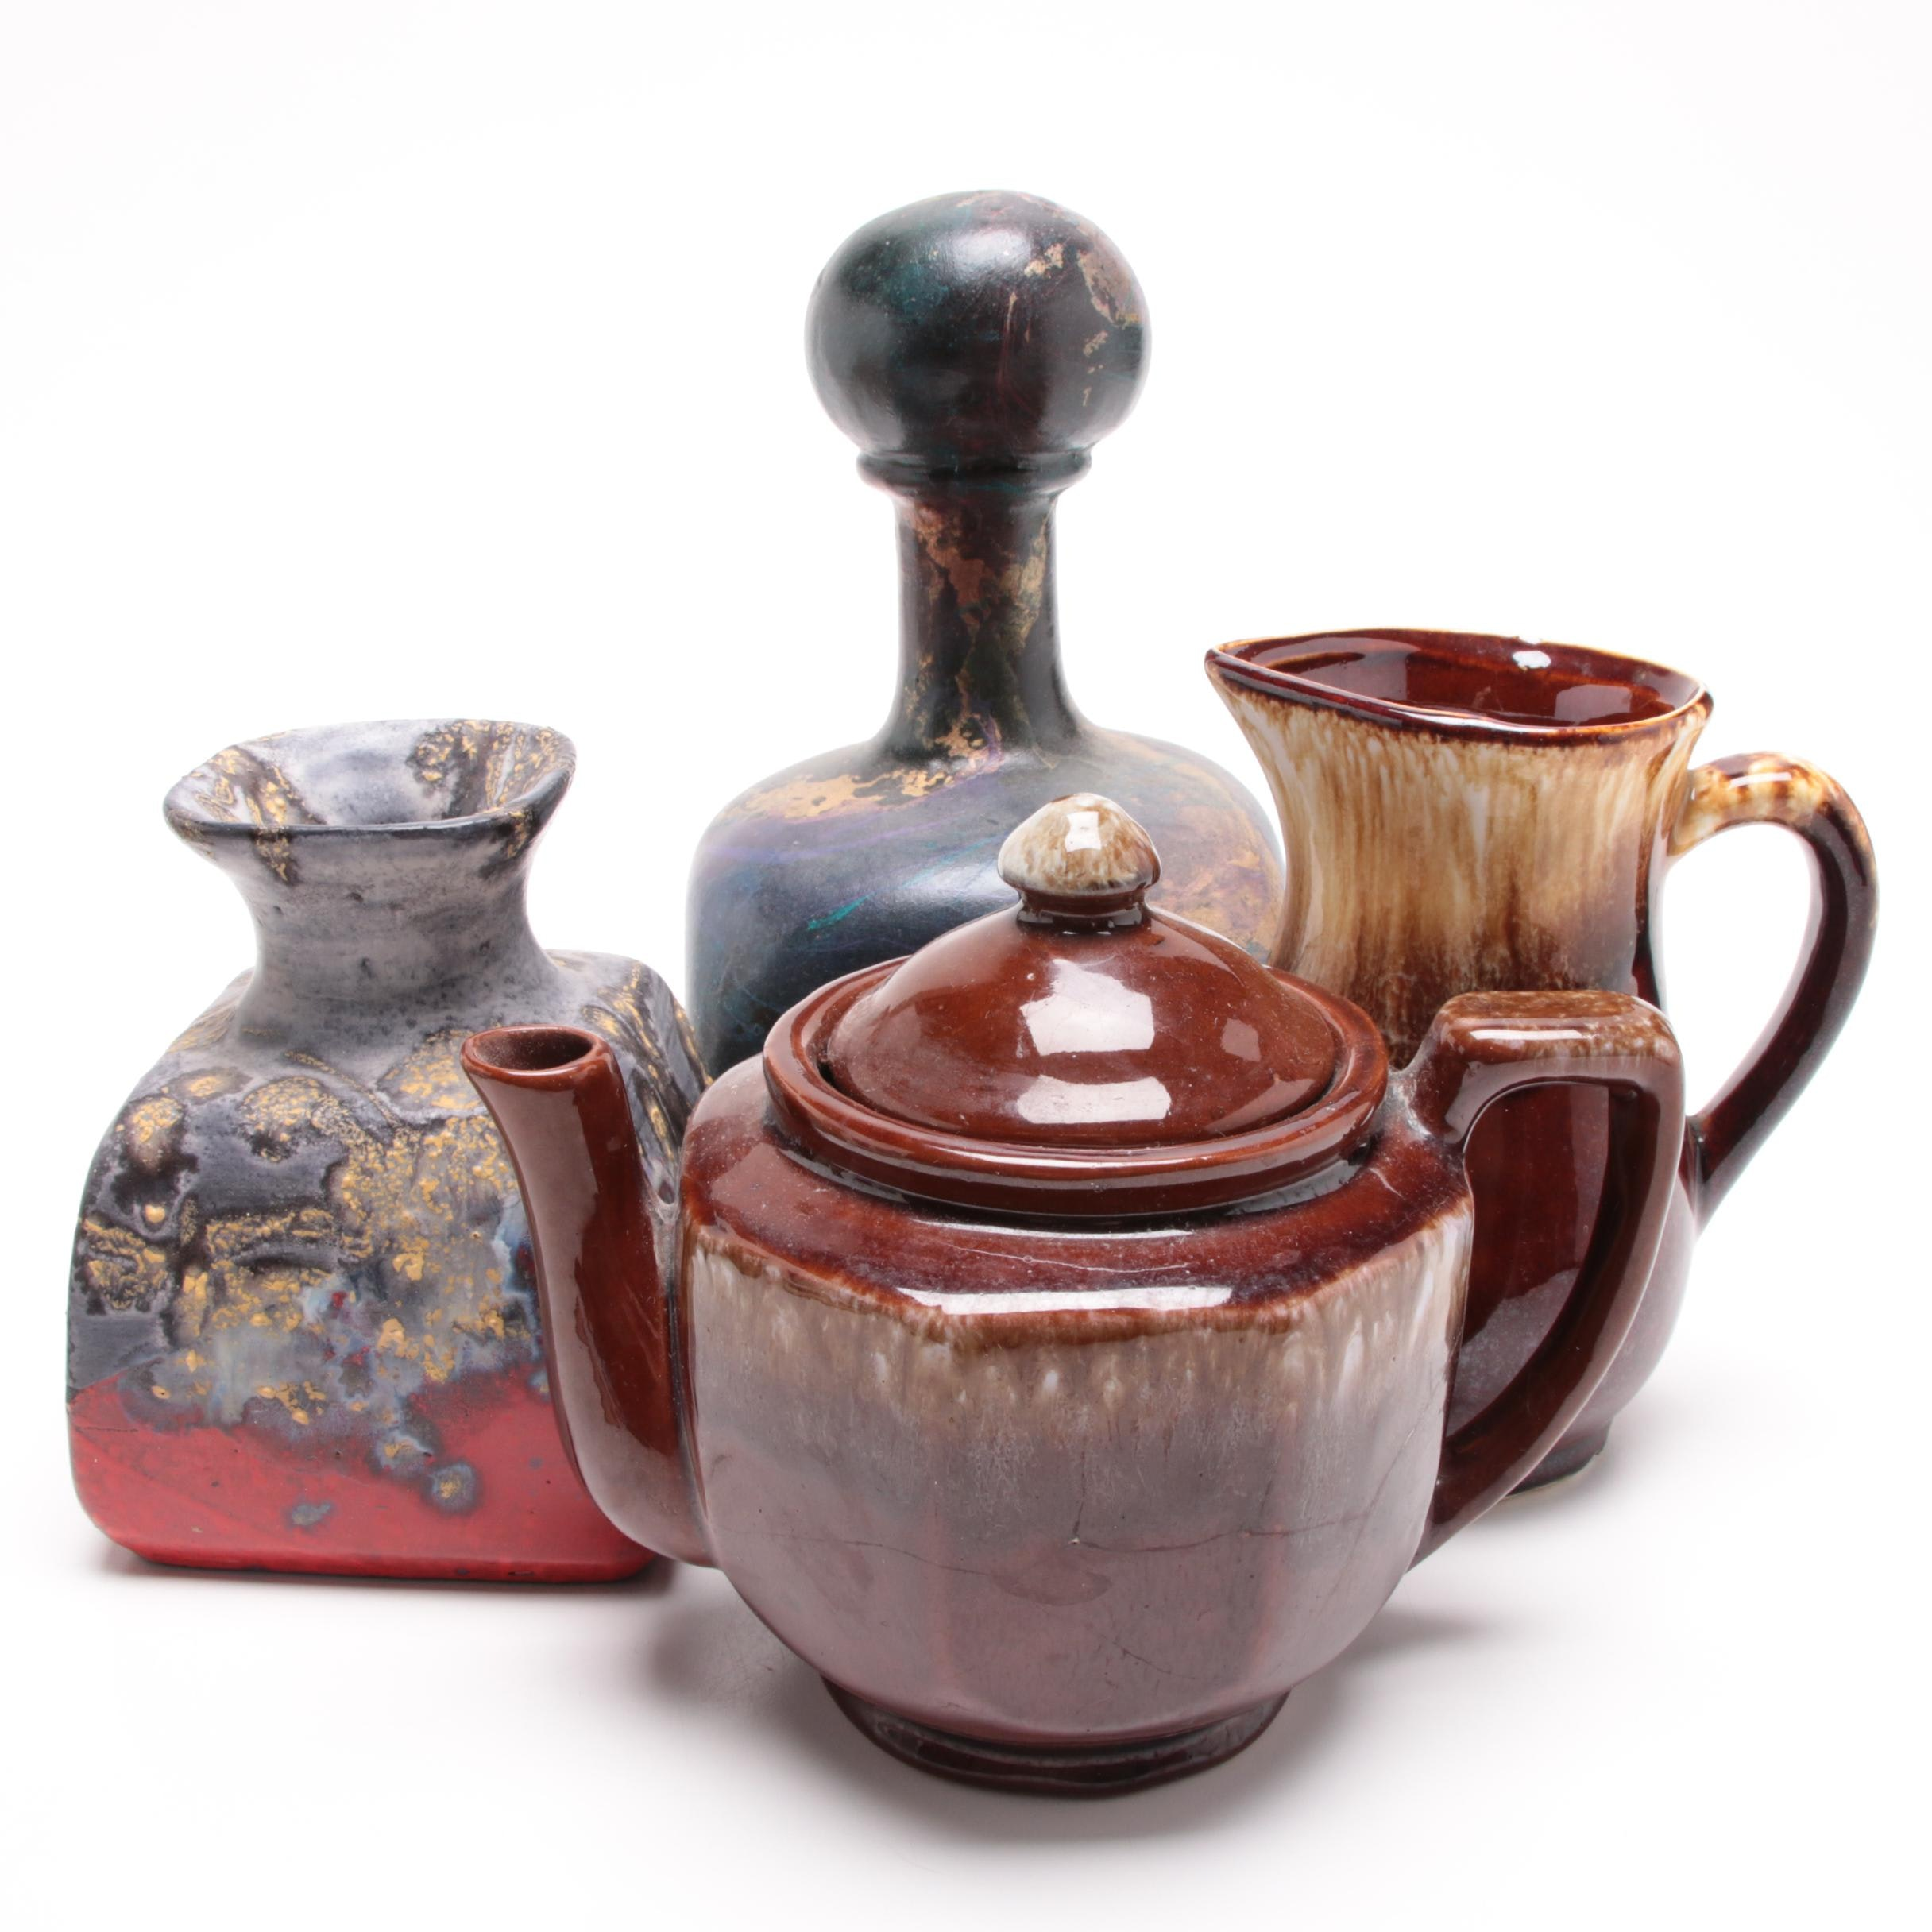 Marcello Fantoni Vase with Teapot and Other Decor